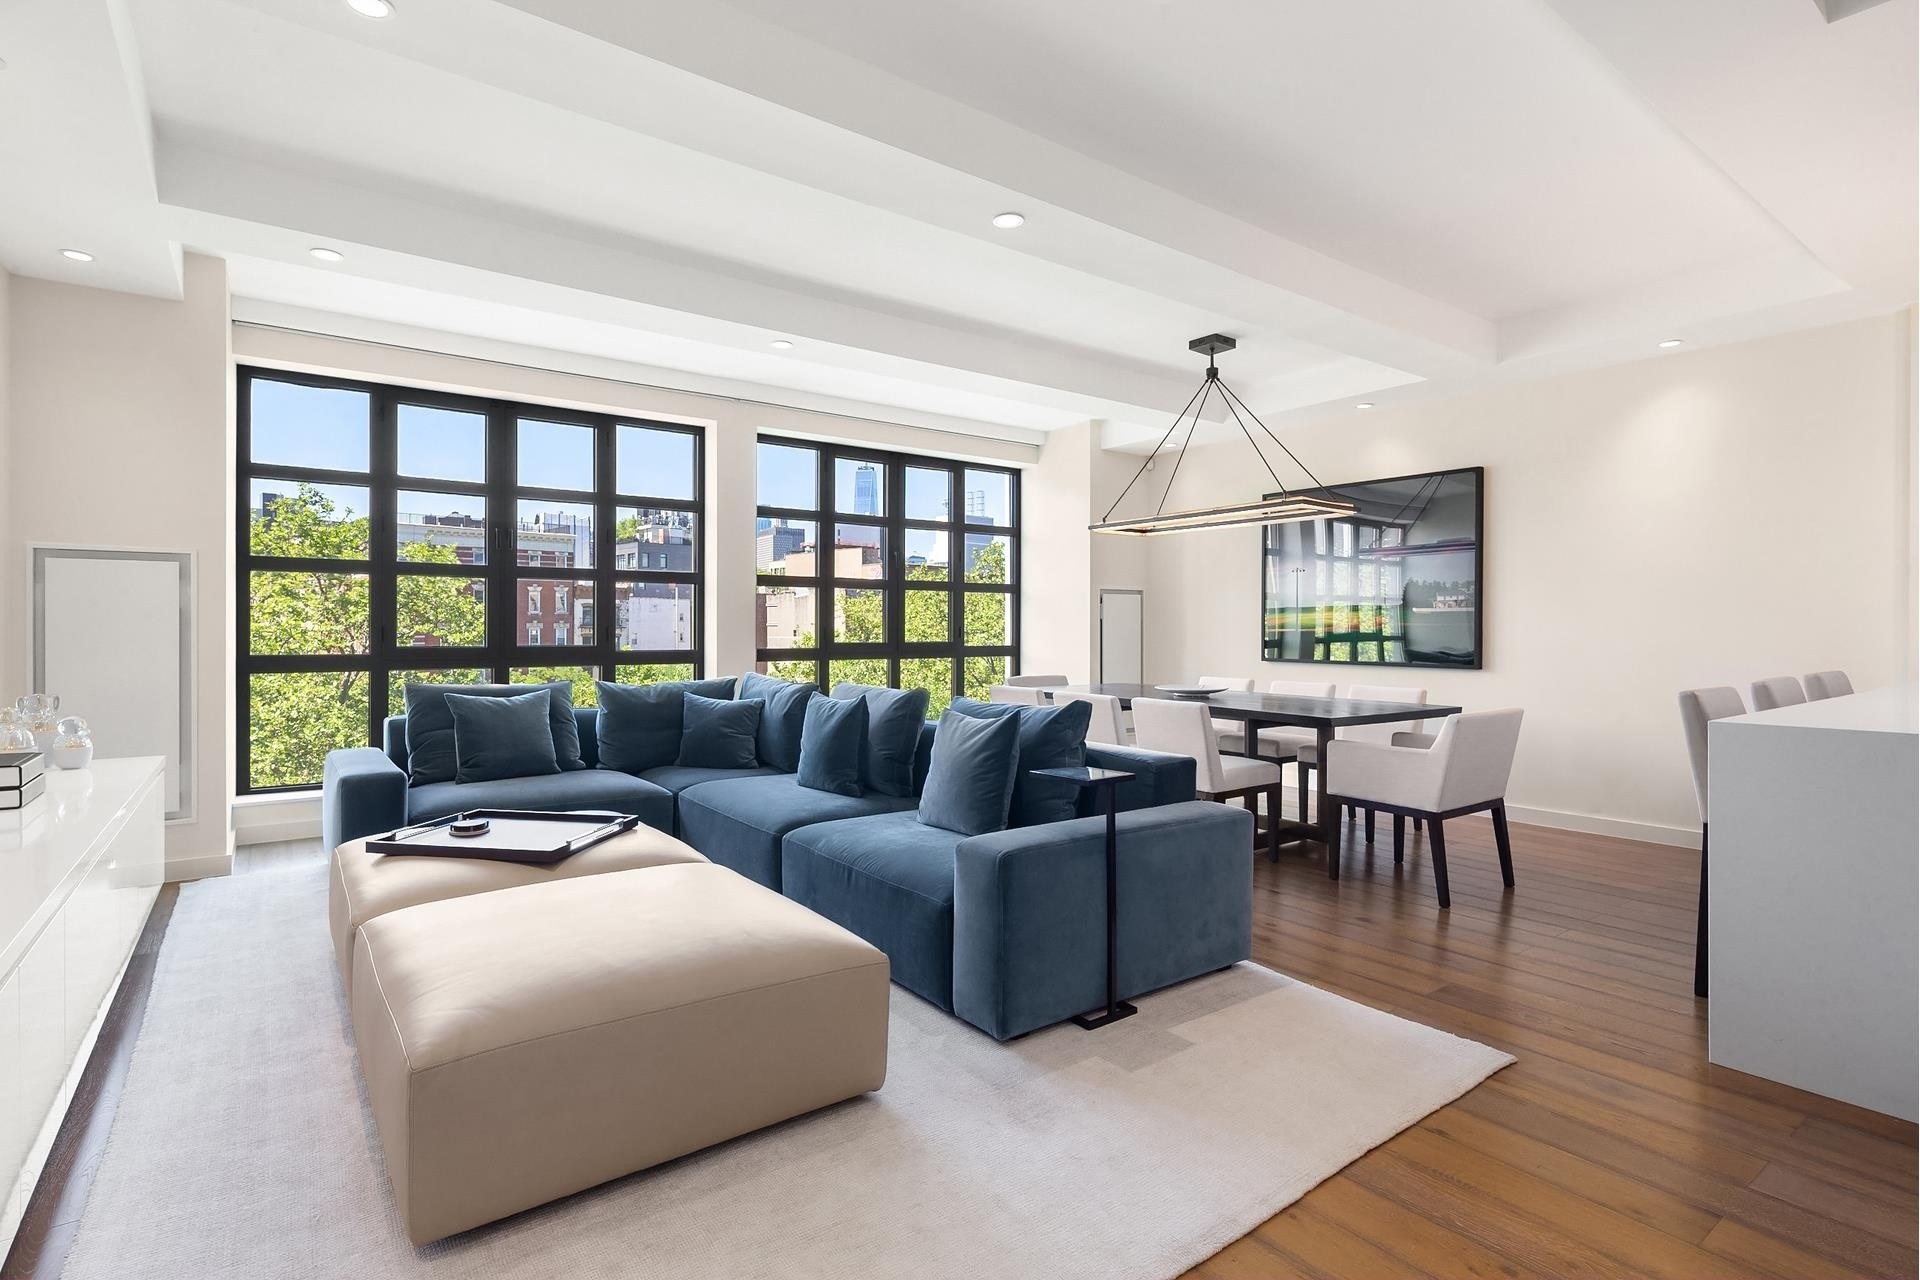 Condominium for Sale at 64 East, 64 E 1ST ST , 5 East Village, New York, NY 10003